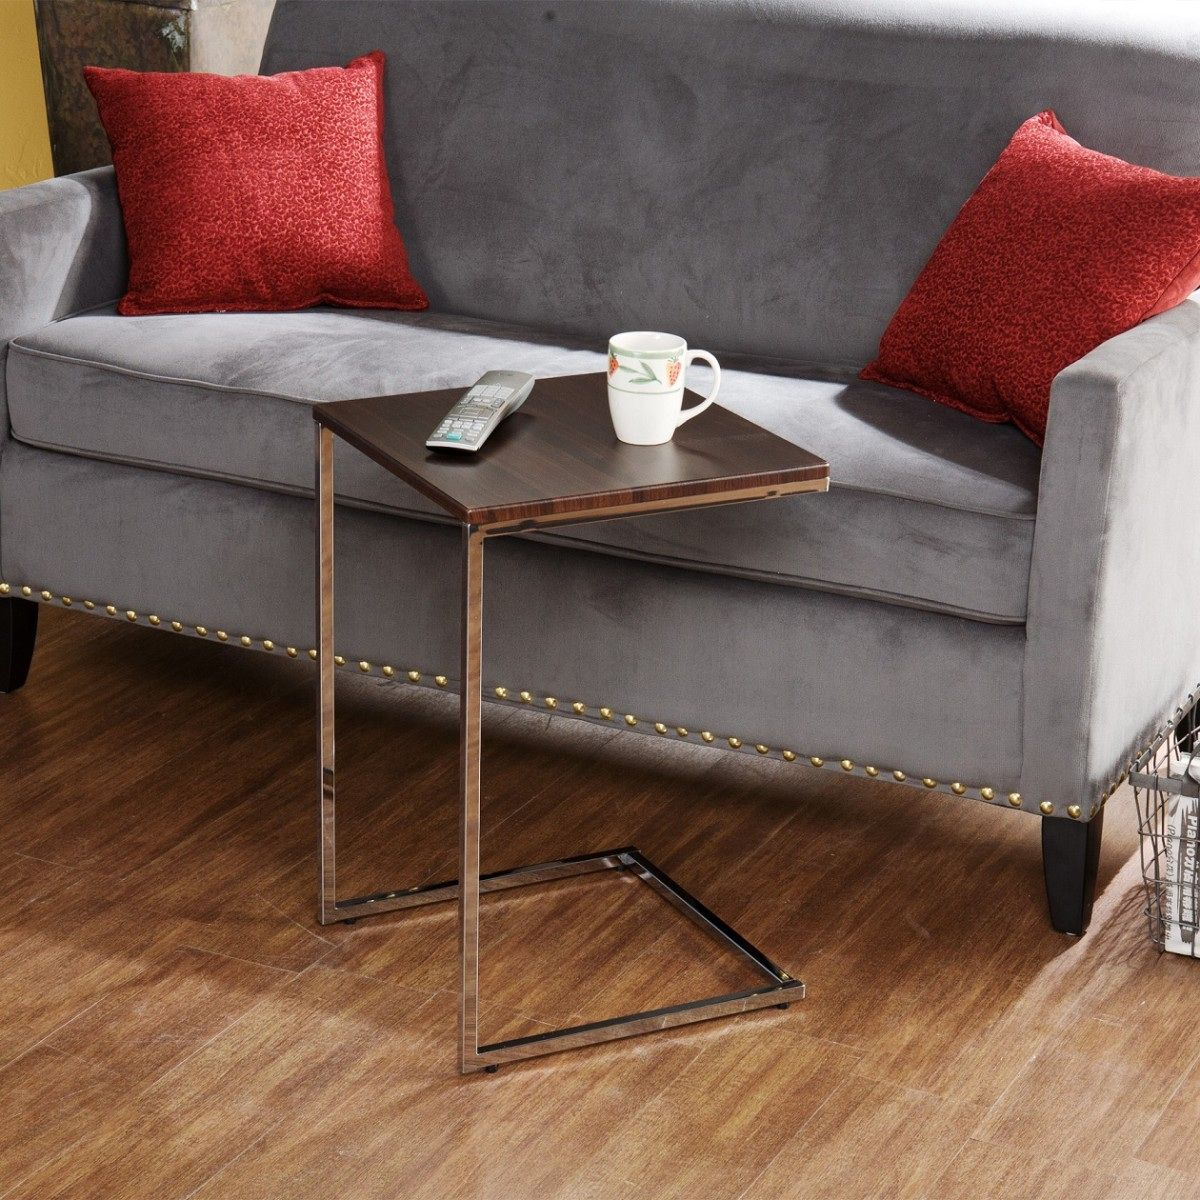 20 Tv Tray Coffee Table Custom Home Office Furniture Check More At Http